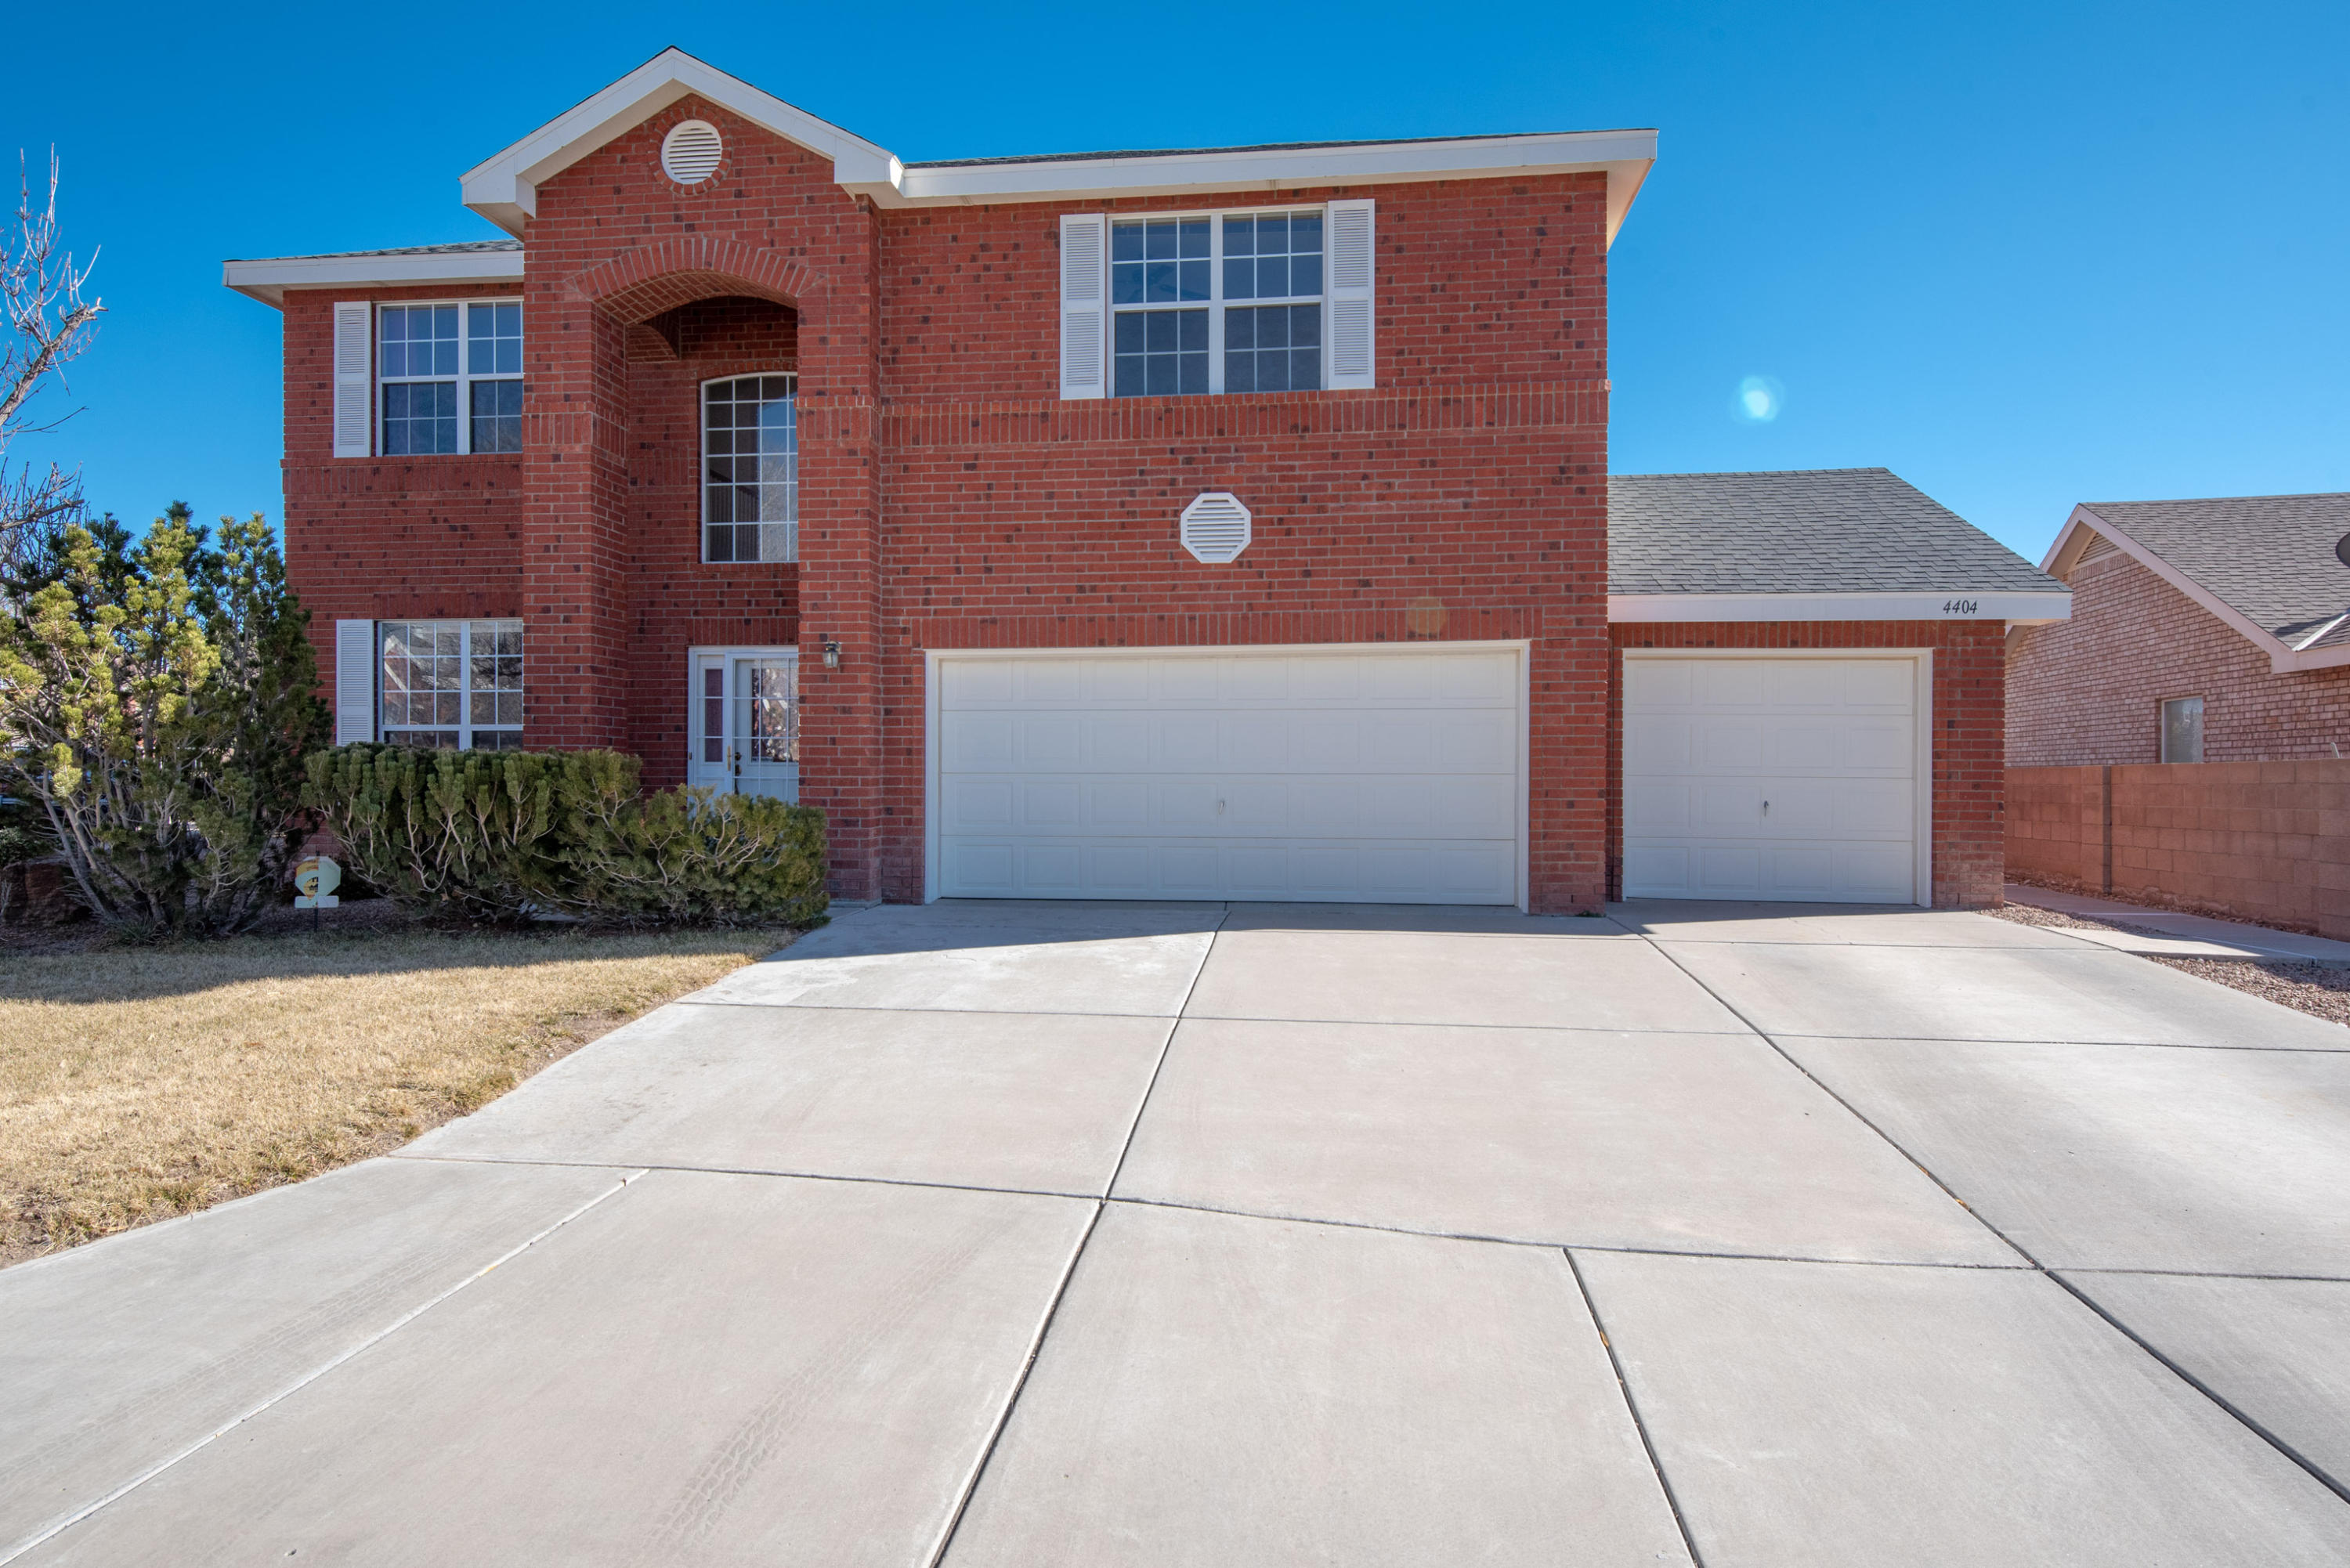 One of Northwest Albuquerque and Northwest Heights 3 Bedroom Homes for Sale at 4404 NW Westridge Court